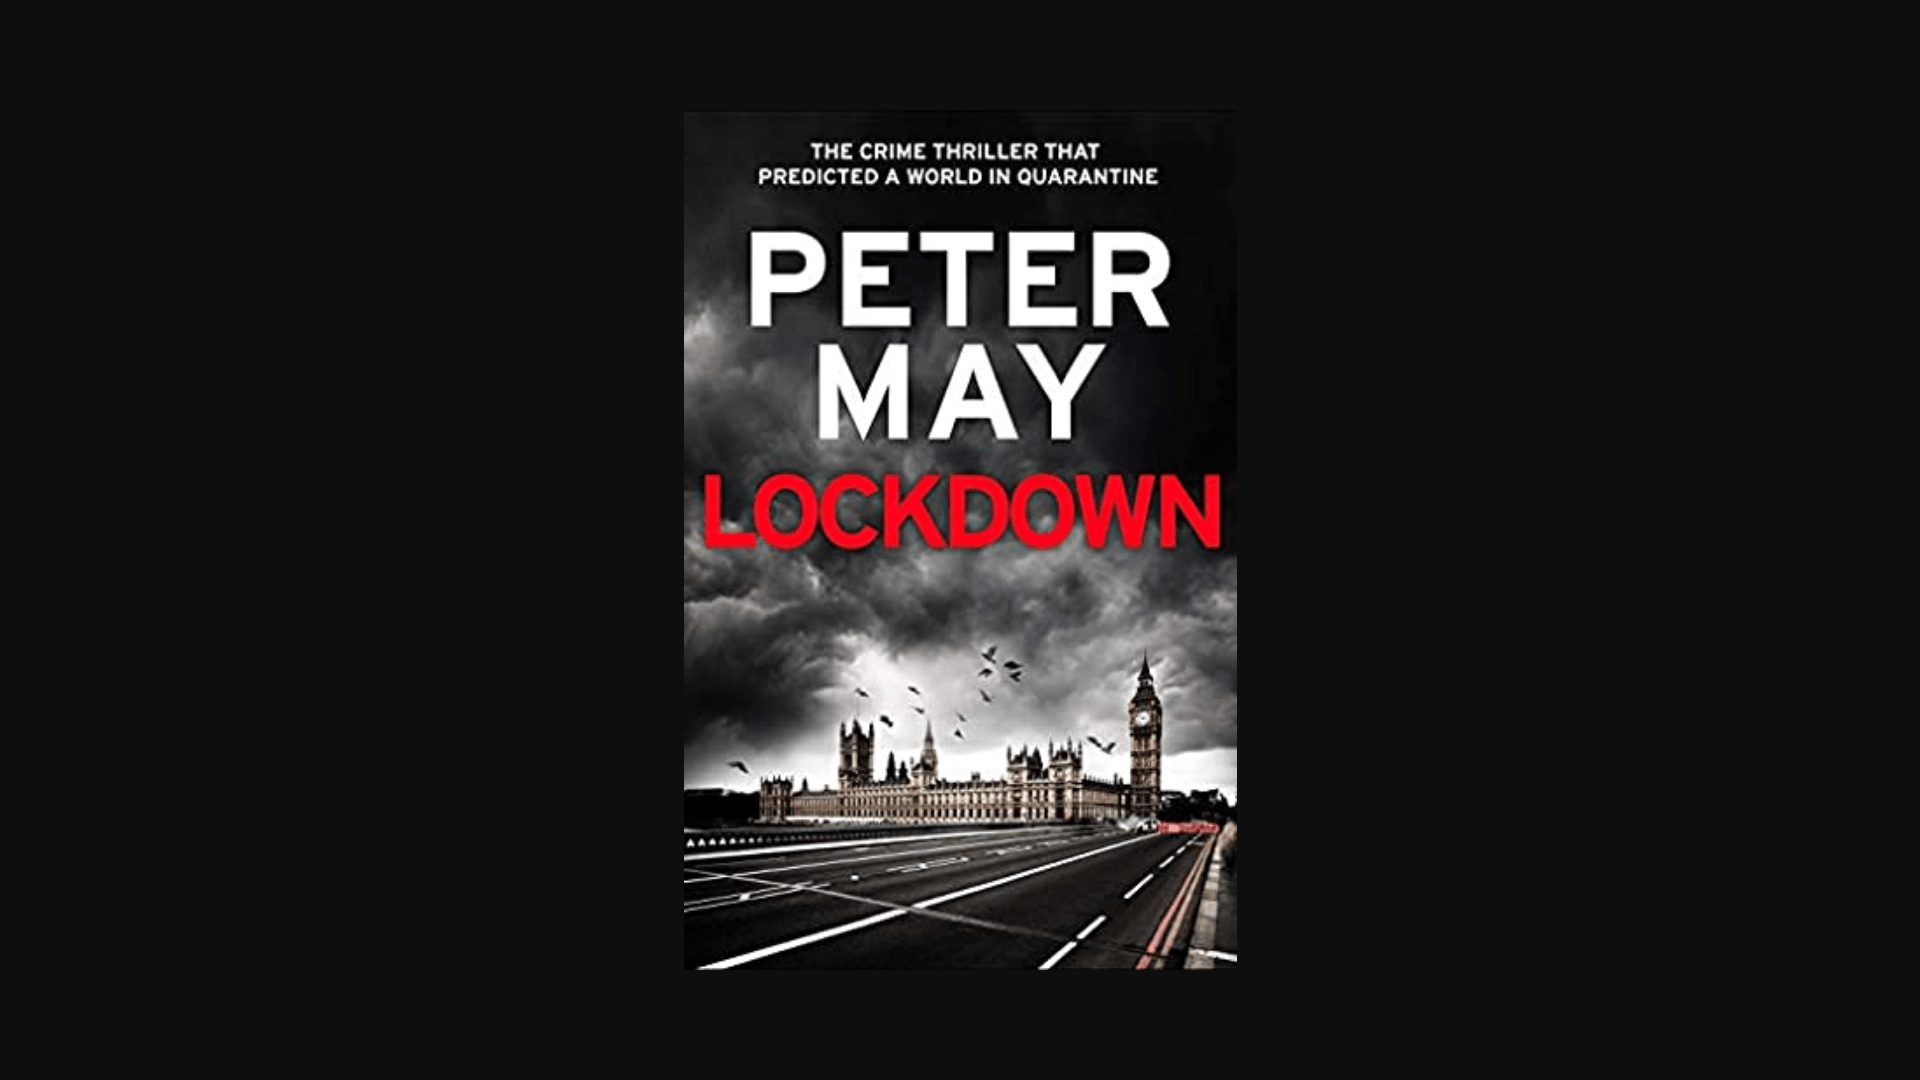 Peter May Lockdown Novel Cover